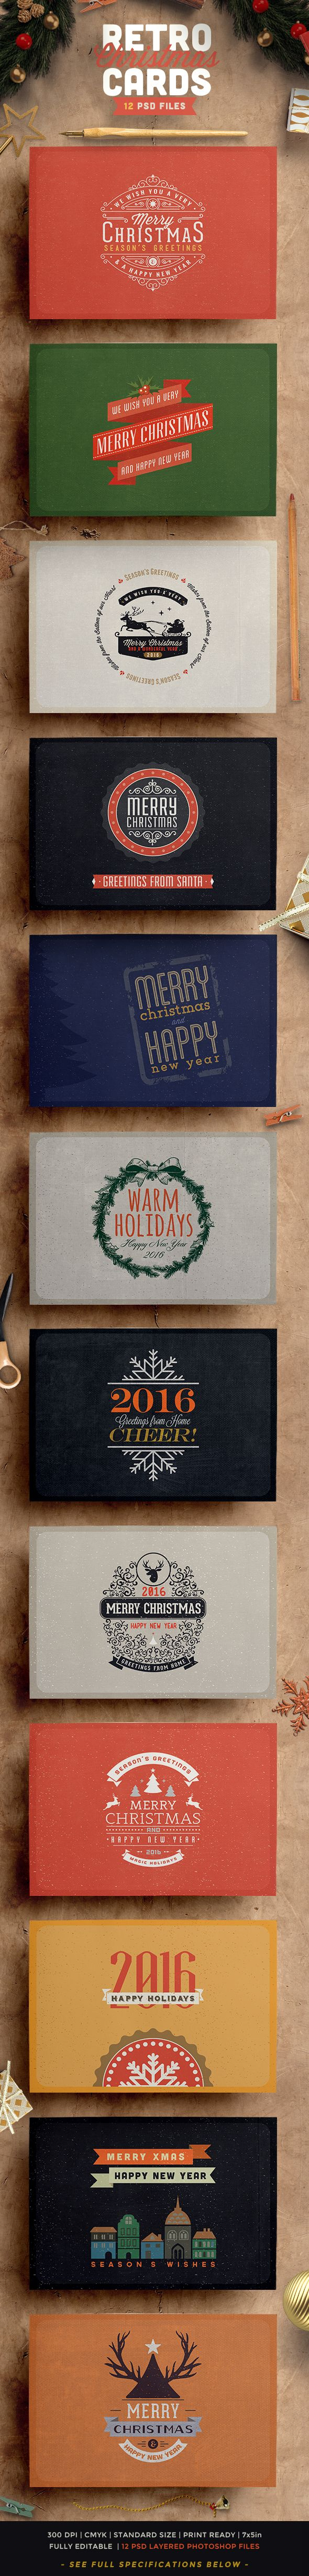 Retro / Vintage Christmas Card PackBeing a huge fan of Lost-Type foundry, I created a special free font selection materialized in a beautiful retro / vintage Christmas card pack! Check the typography selection, the textures and the old-printing touch of…